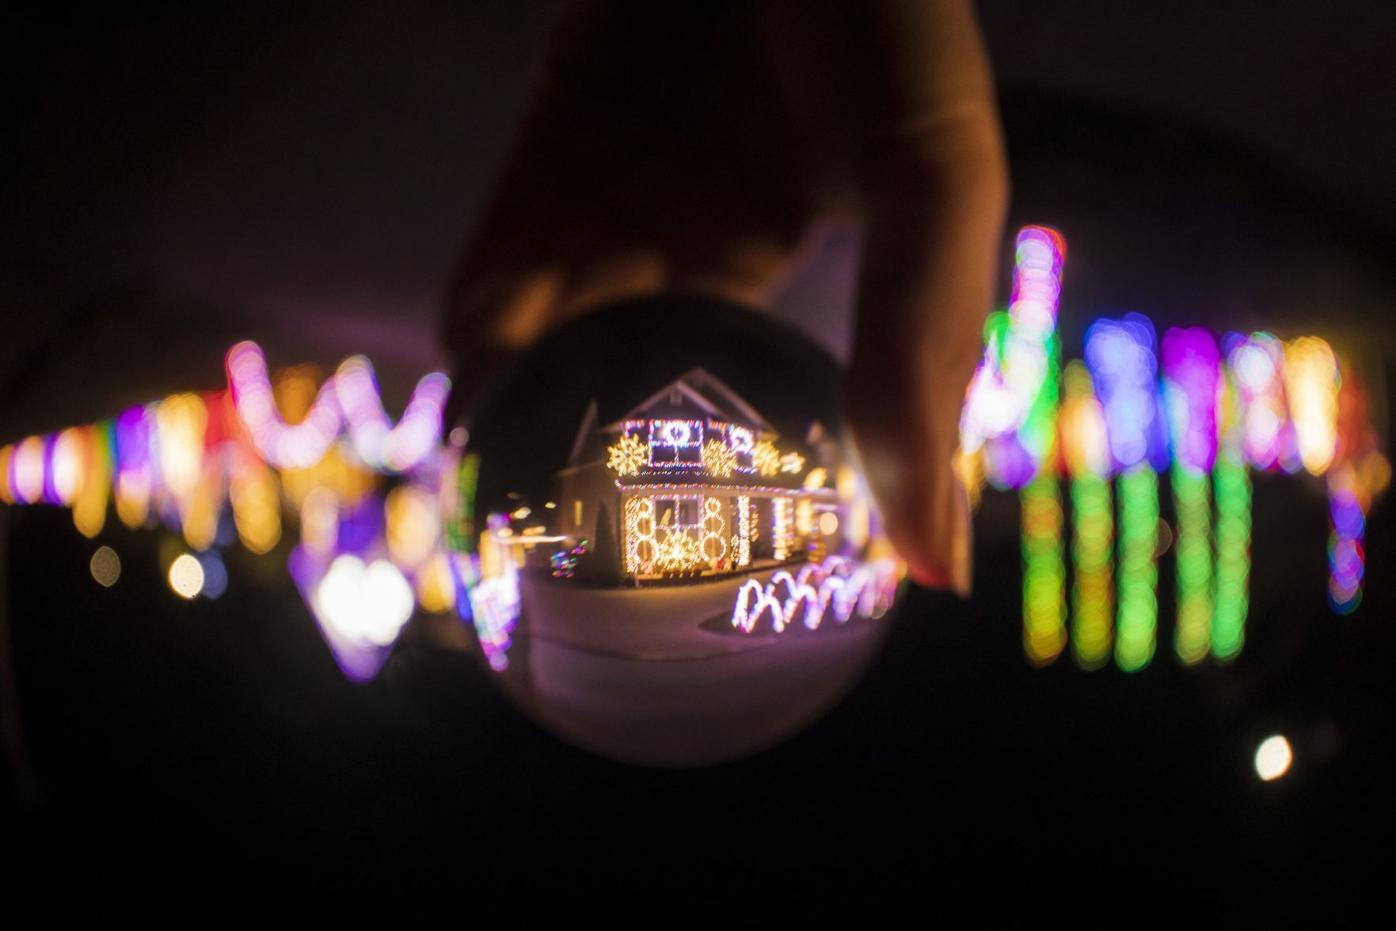 Christmas Toy Runs November 2021 Maryville Tn Let There Be Light The Bacon Family Illuminates Their Home For The Sake Of Christmas And Community Entertainment Thedailytimes Com